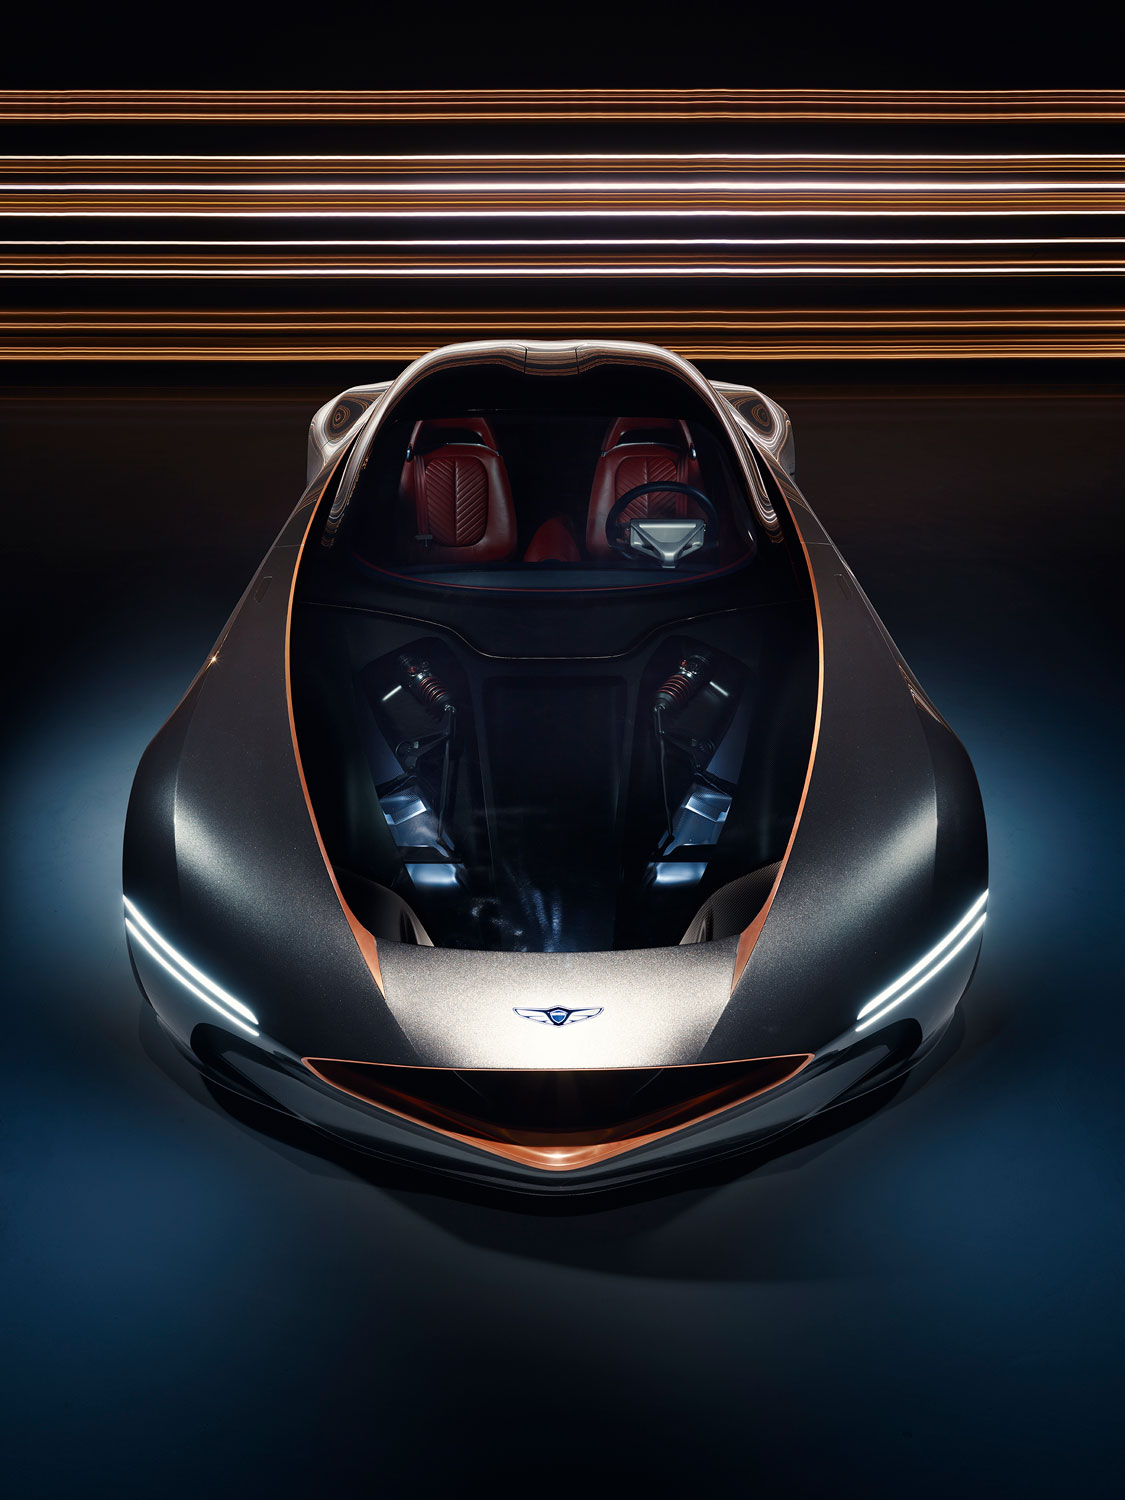 The_Ink_Collective_Creative_Content_Design_Agency_Paris_Sydney_Luxury_Editorial_CEO_Interview_Luxury_Cars_Cannes_Automobile_Hyundai_Motor_Company_Transport_Manfred_Fitzgerald_Genesis_Motors_16.jpg